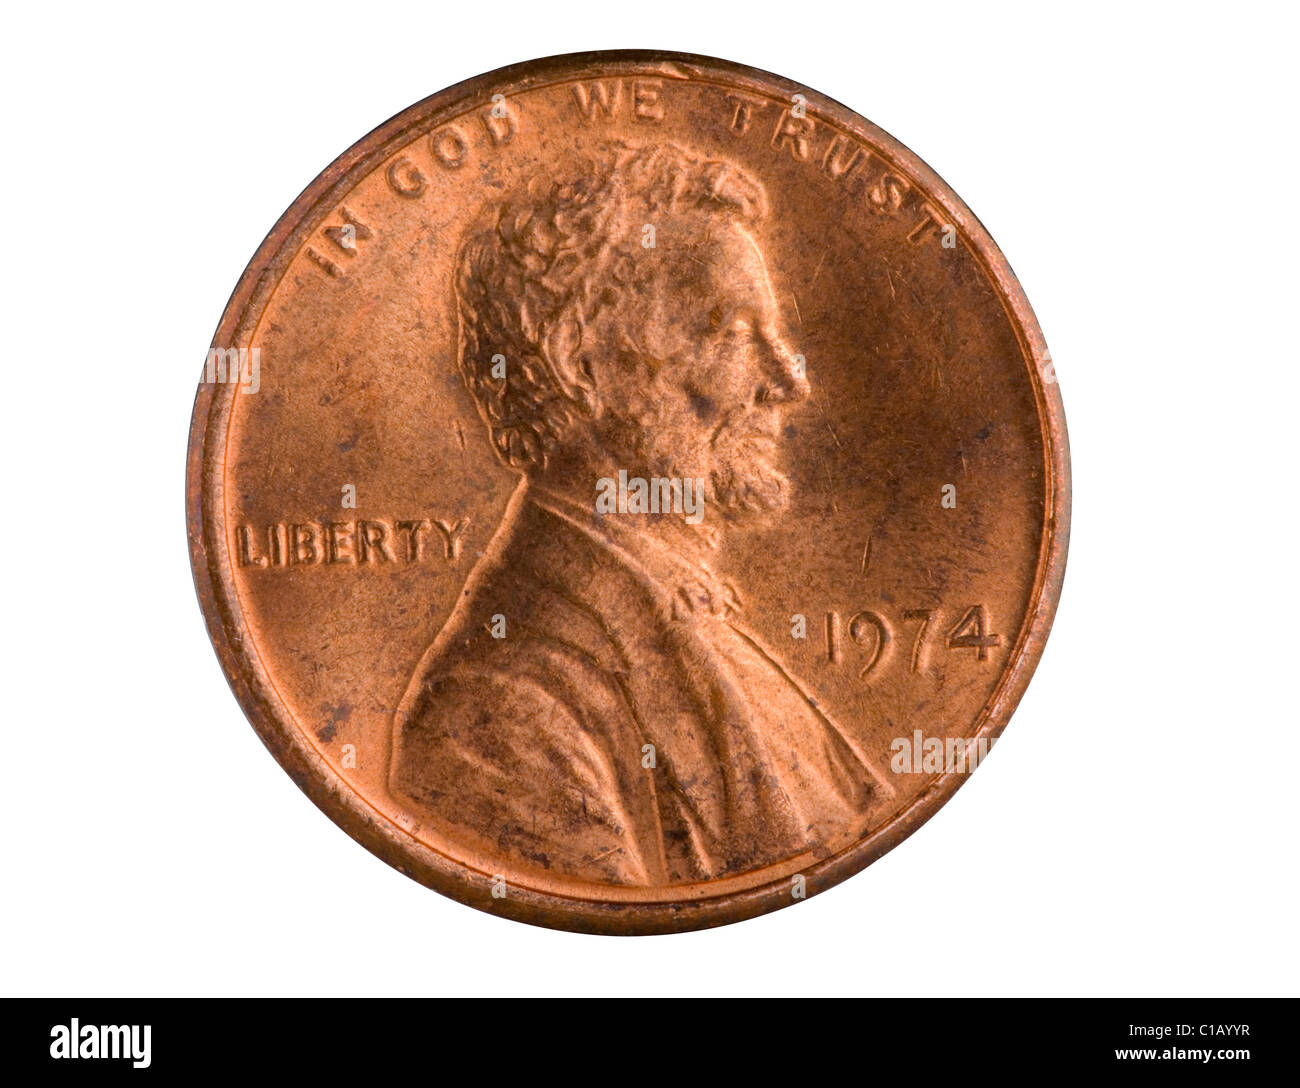 Us 1 Cent Copper Penny From 1974 Pennies Made Prior To 1983 Had A Stock Photo Royalty Free